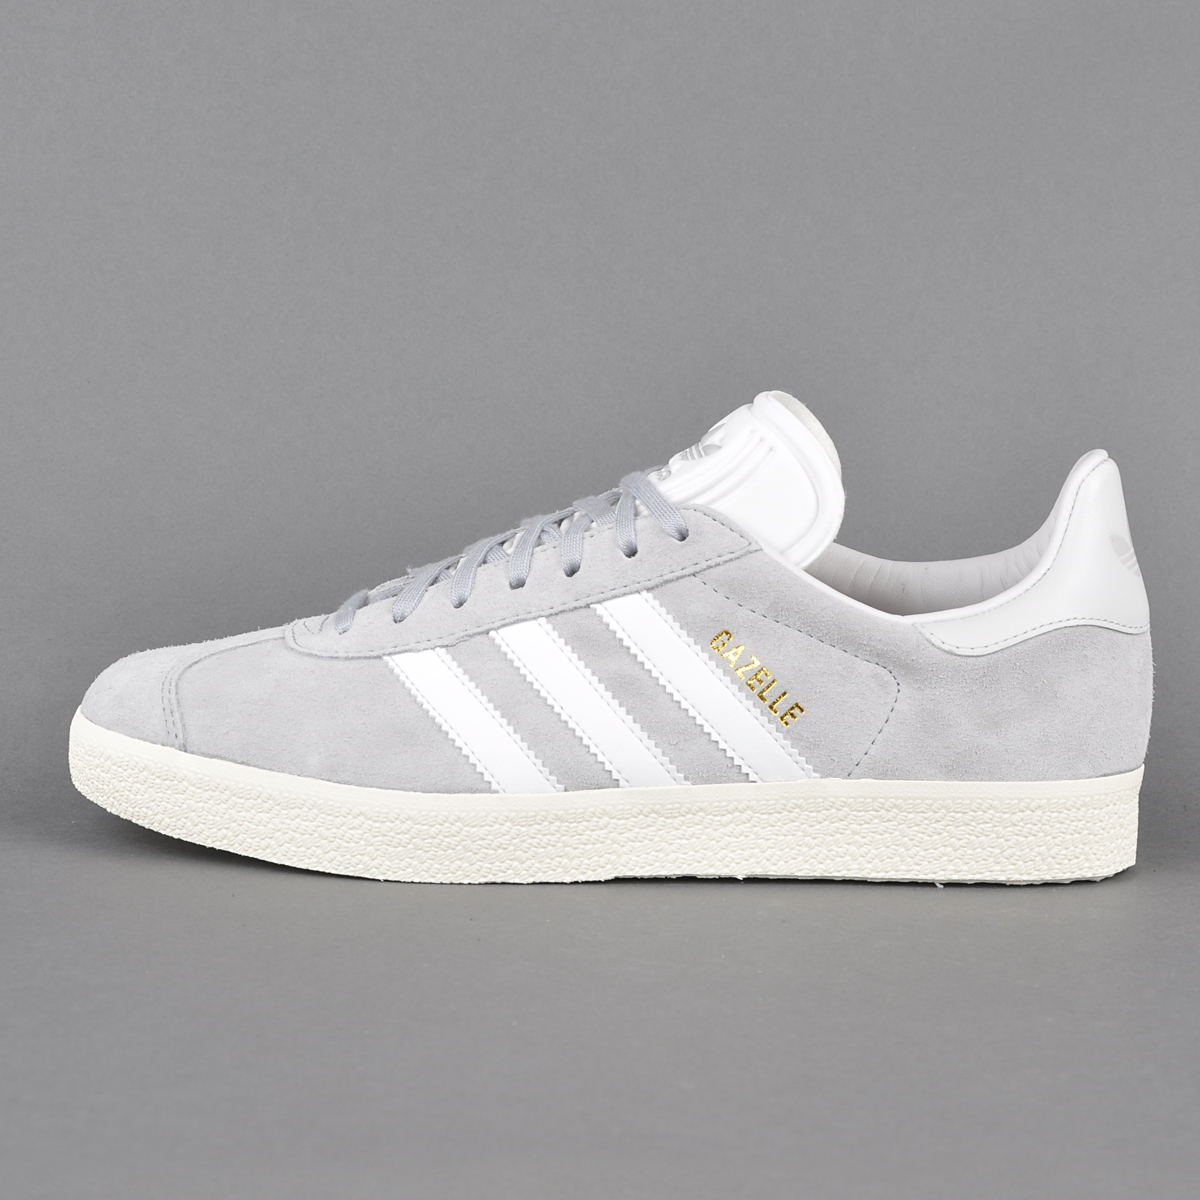 Cheap adidas gazelle grey Adidas Sneakers Online